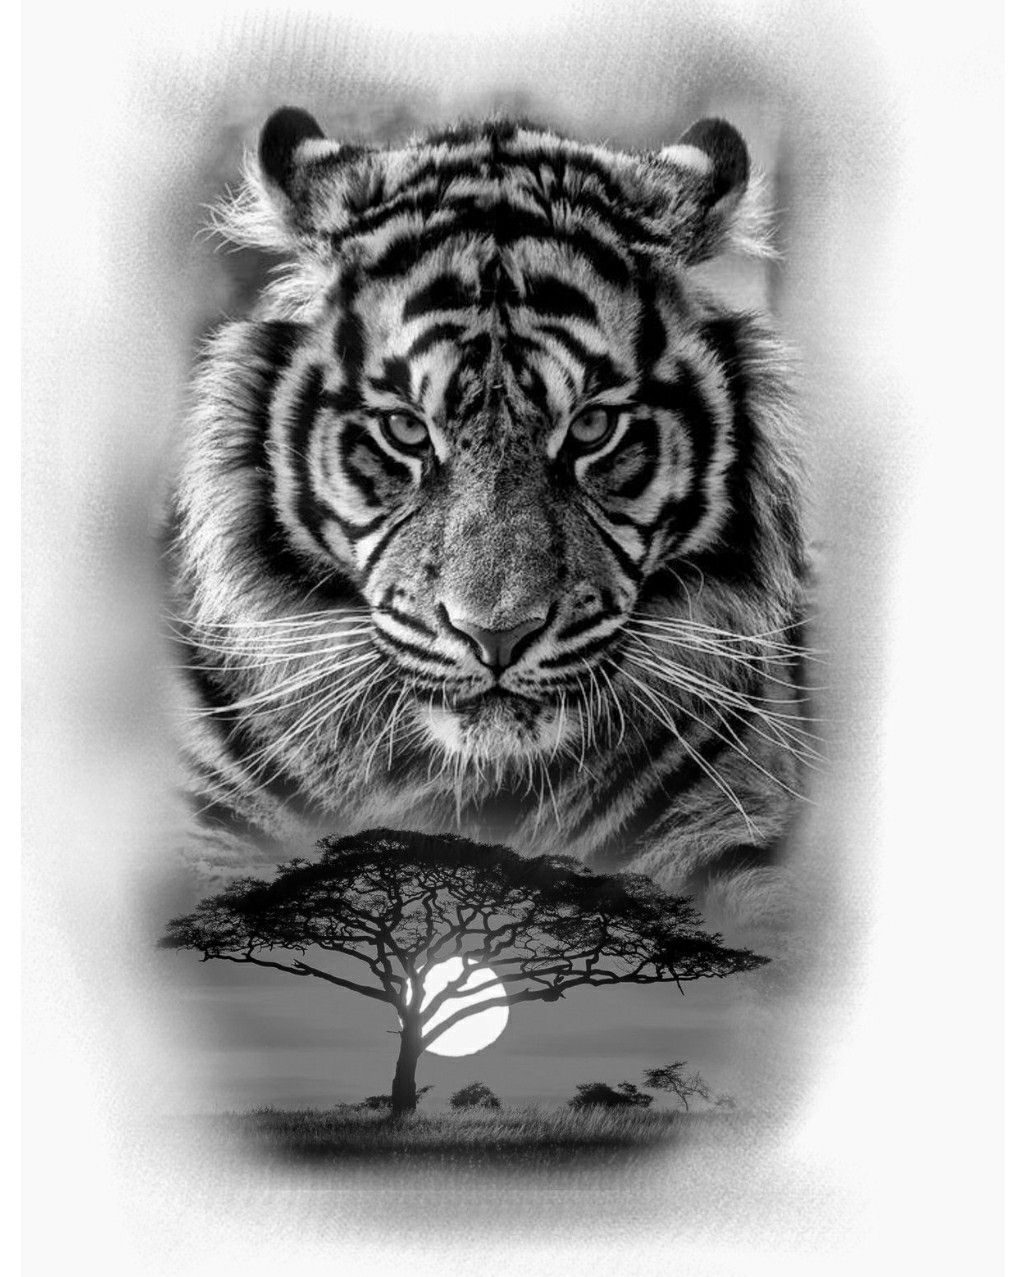 tiger design Animal Faces is part of Best  Animal Faces Ideas On Pinterest Tiger Face Tattoo - IBRAHIM SAYS TIGER ZINDA  HAI😎😎😎😎😎😎😎😎😎😎